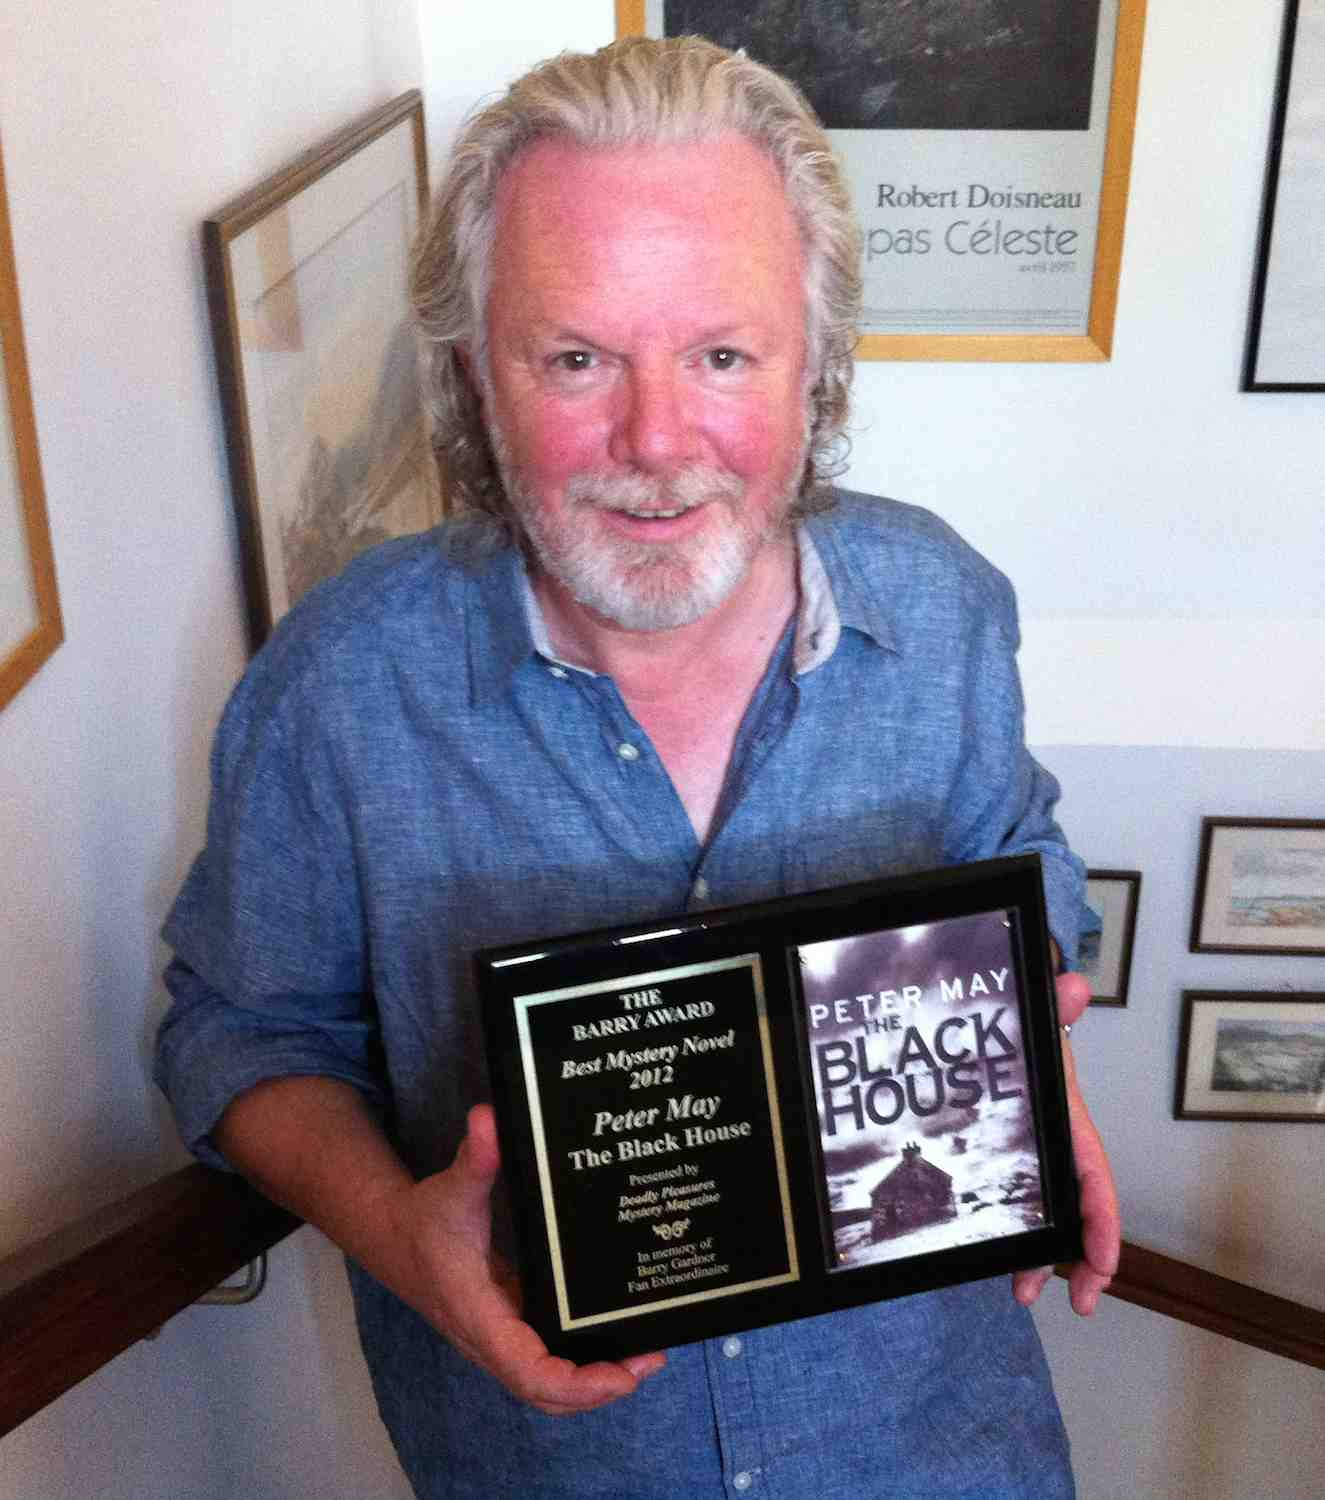 Peter May with US BarryAward for Best Crime Novel for The Blackhouse